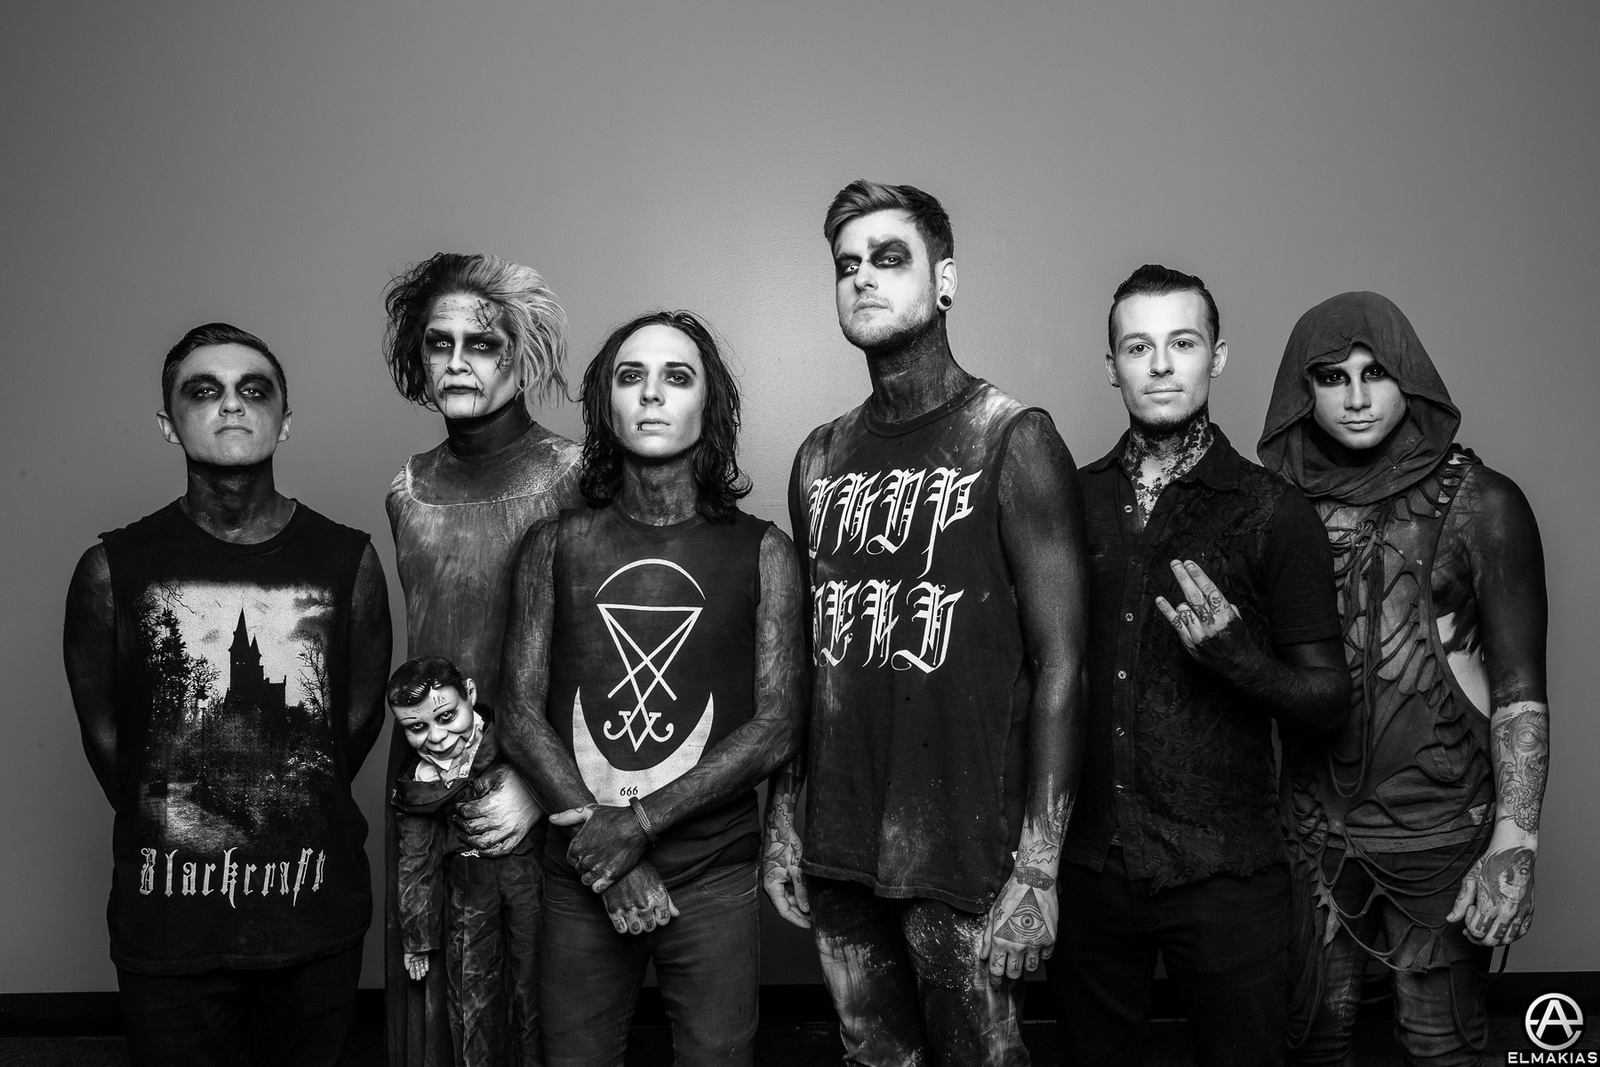 Motionless in White with Neil - The Parks And Devastation Tour by Adam Elmakias